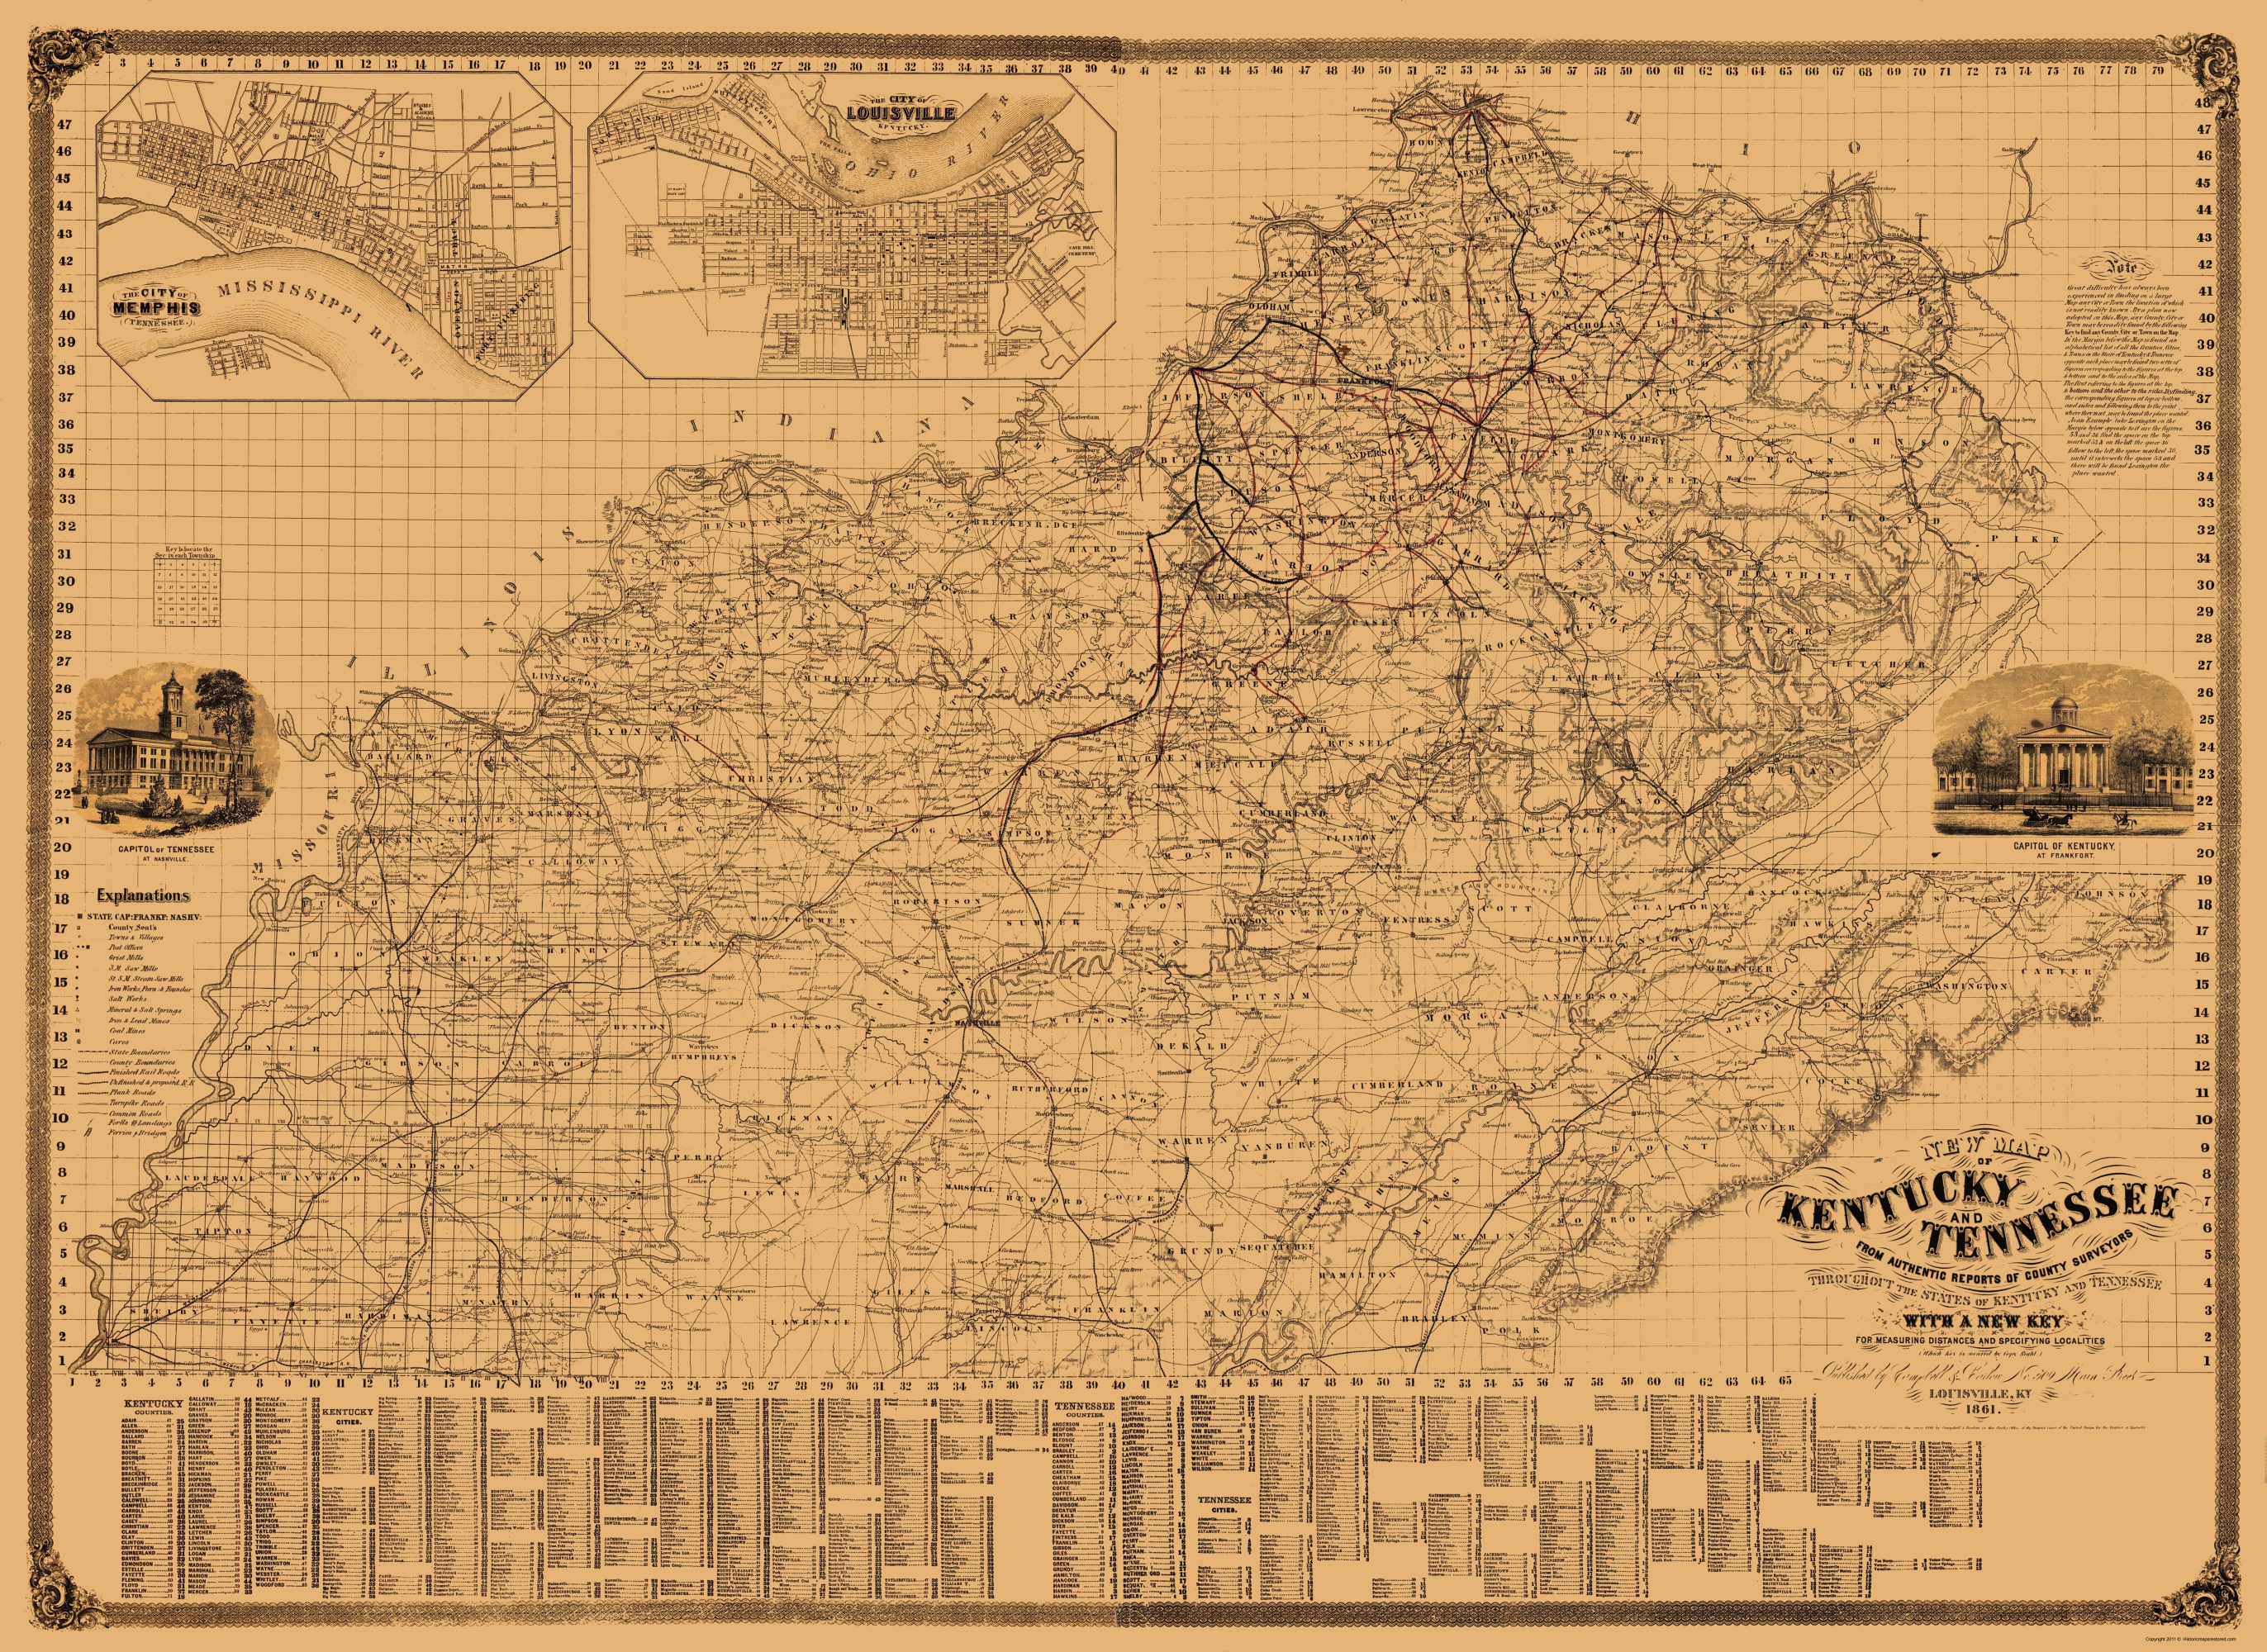 Old State Map - Kentucky, Tennessee - Campbell 1861 - 23 x 31.56 on ky highway map, ky fish and wildlife map, ky area map, louisville ky city limits map, ky border map, ky phone map, lexington ky map, ky tennessee map, ky airport map, kentucky map, ky topographic map, illinois map, ky parks and maps, ky road maps driving directions, ky town map, ky co map, i-64 mile marker map, ky school district map, ky region map, ky county map,